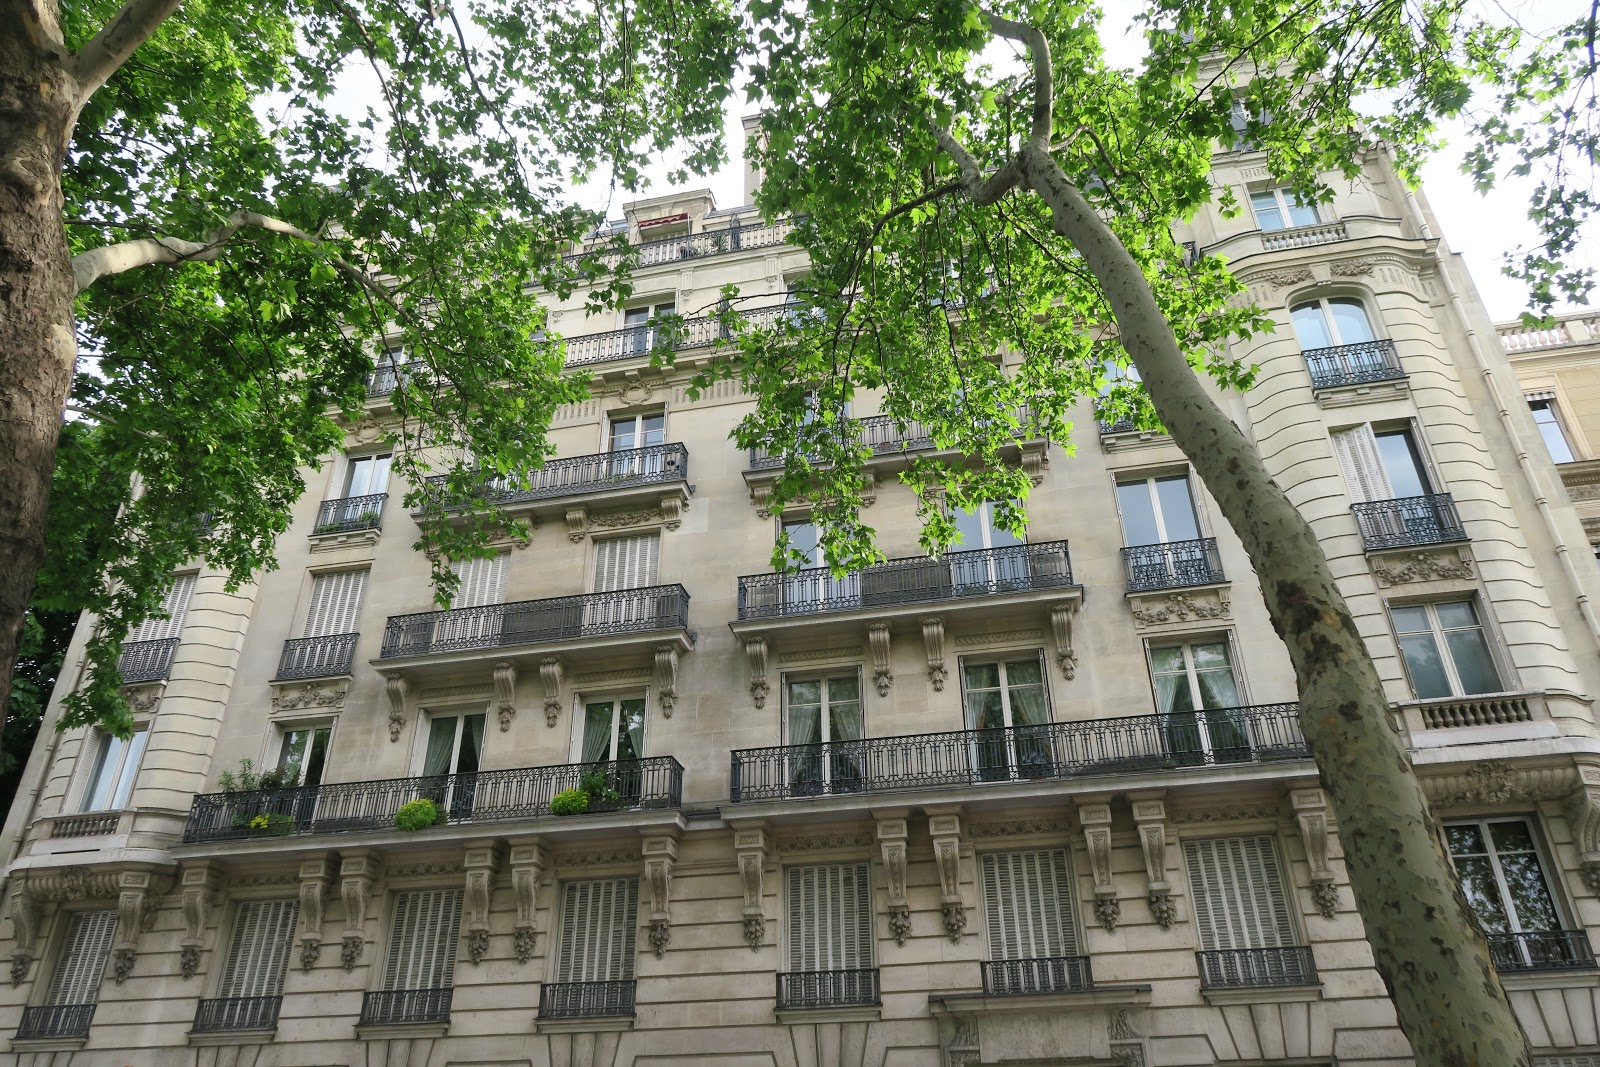 A block of traditional Parisian apartments from our trip to Paris